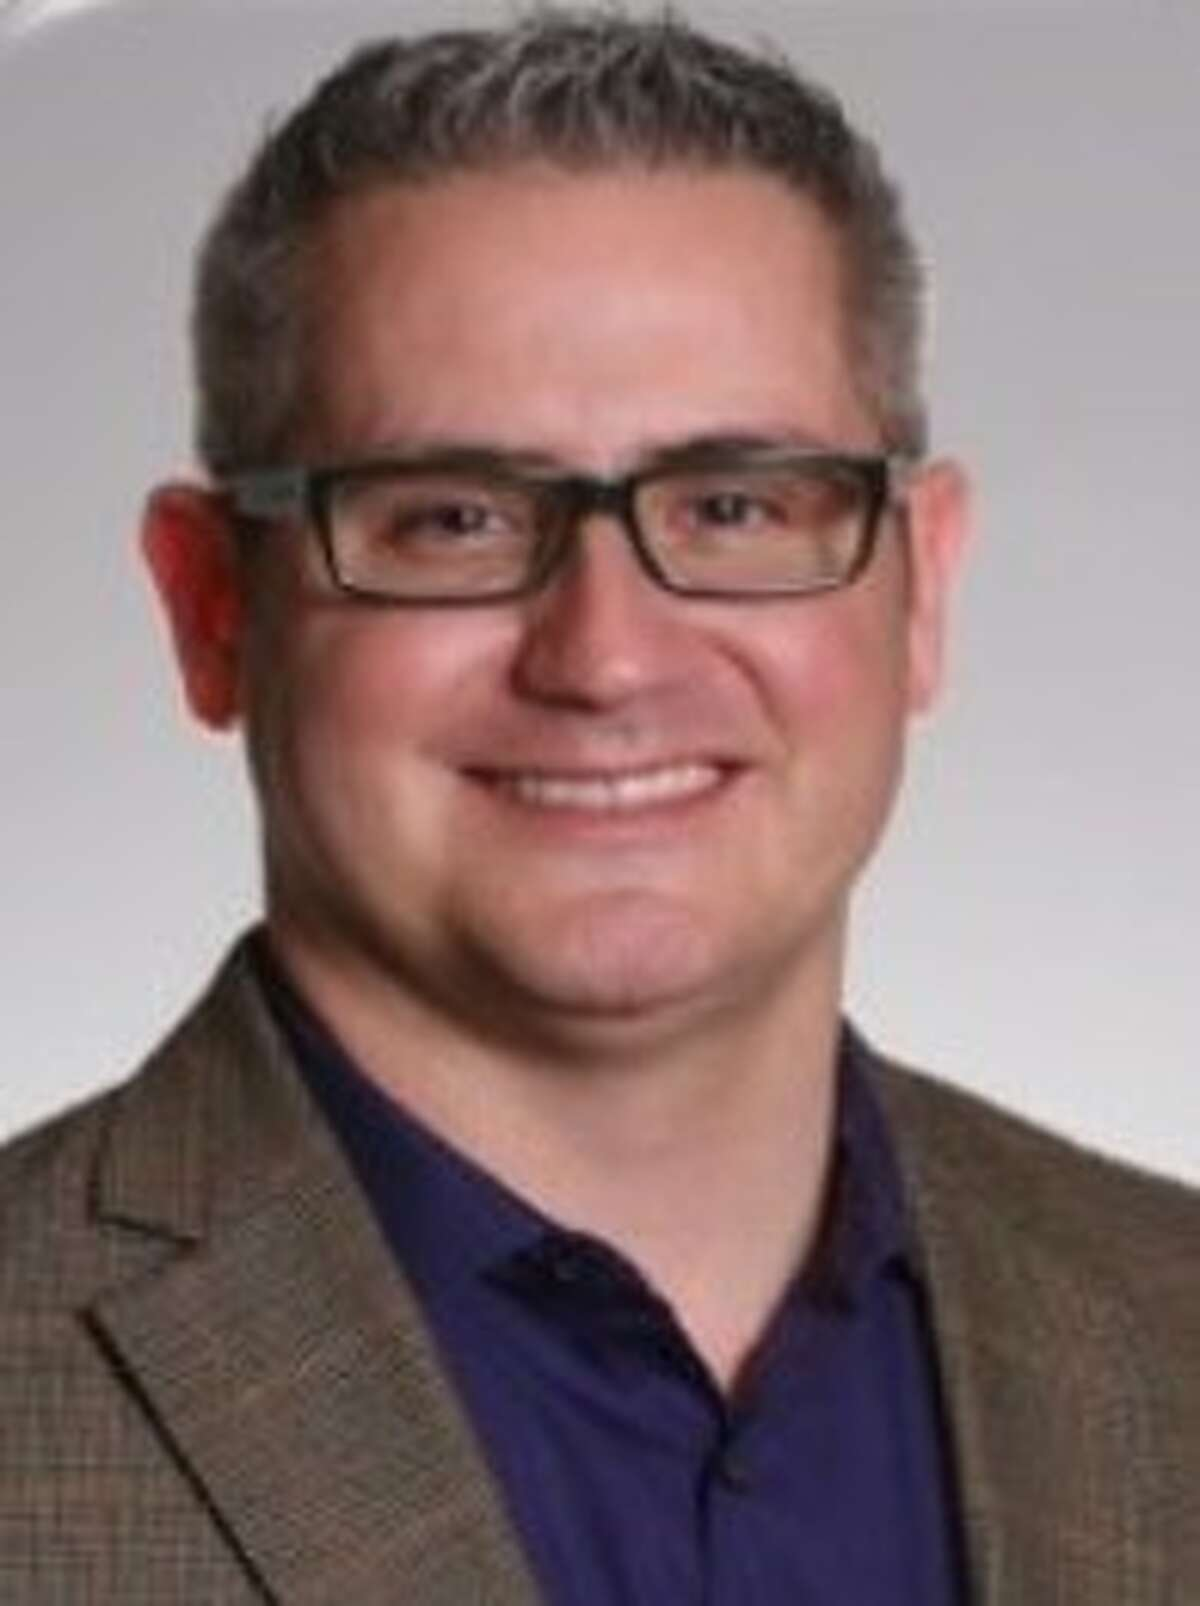 Jorge Vazquez has joinedAT& to oversee business in South Texas.